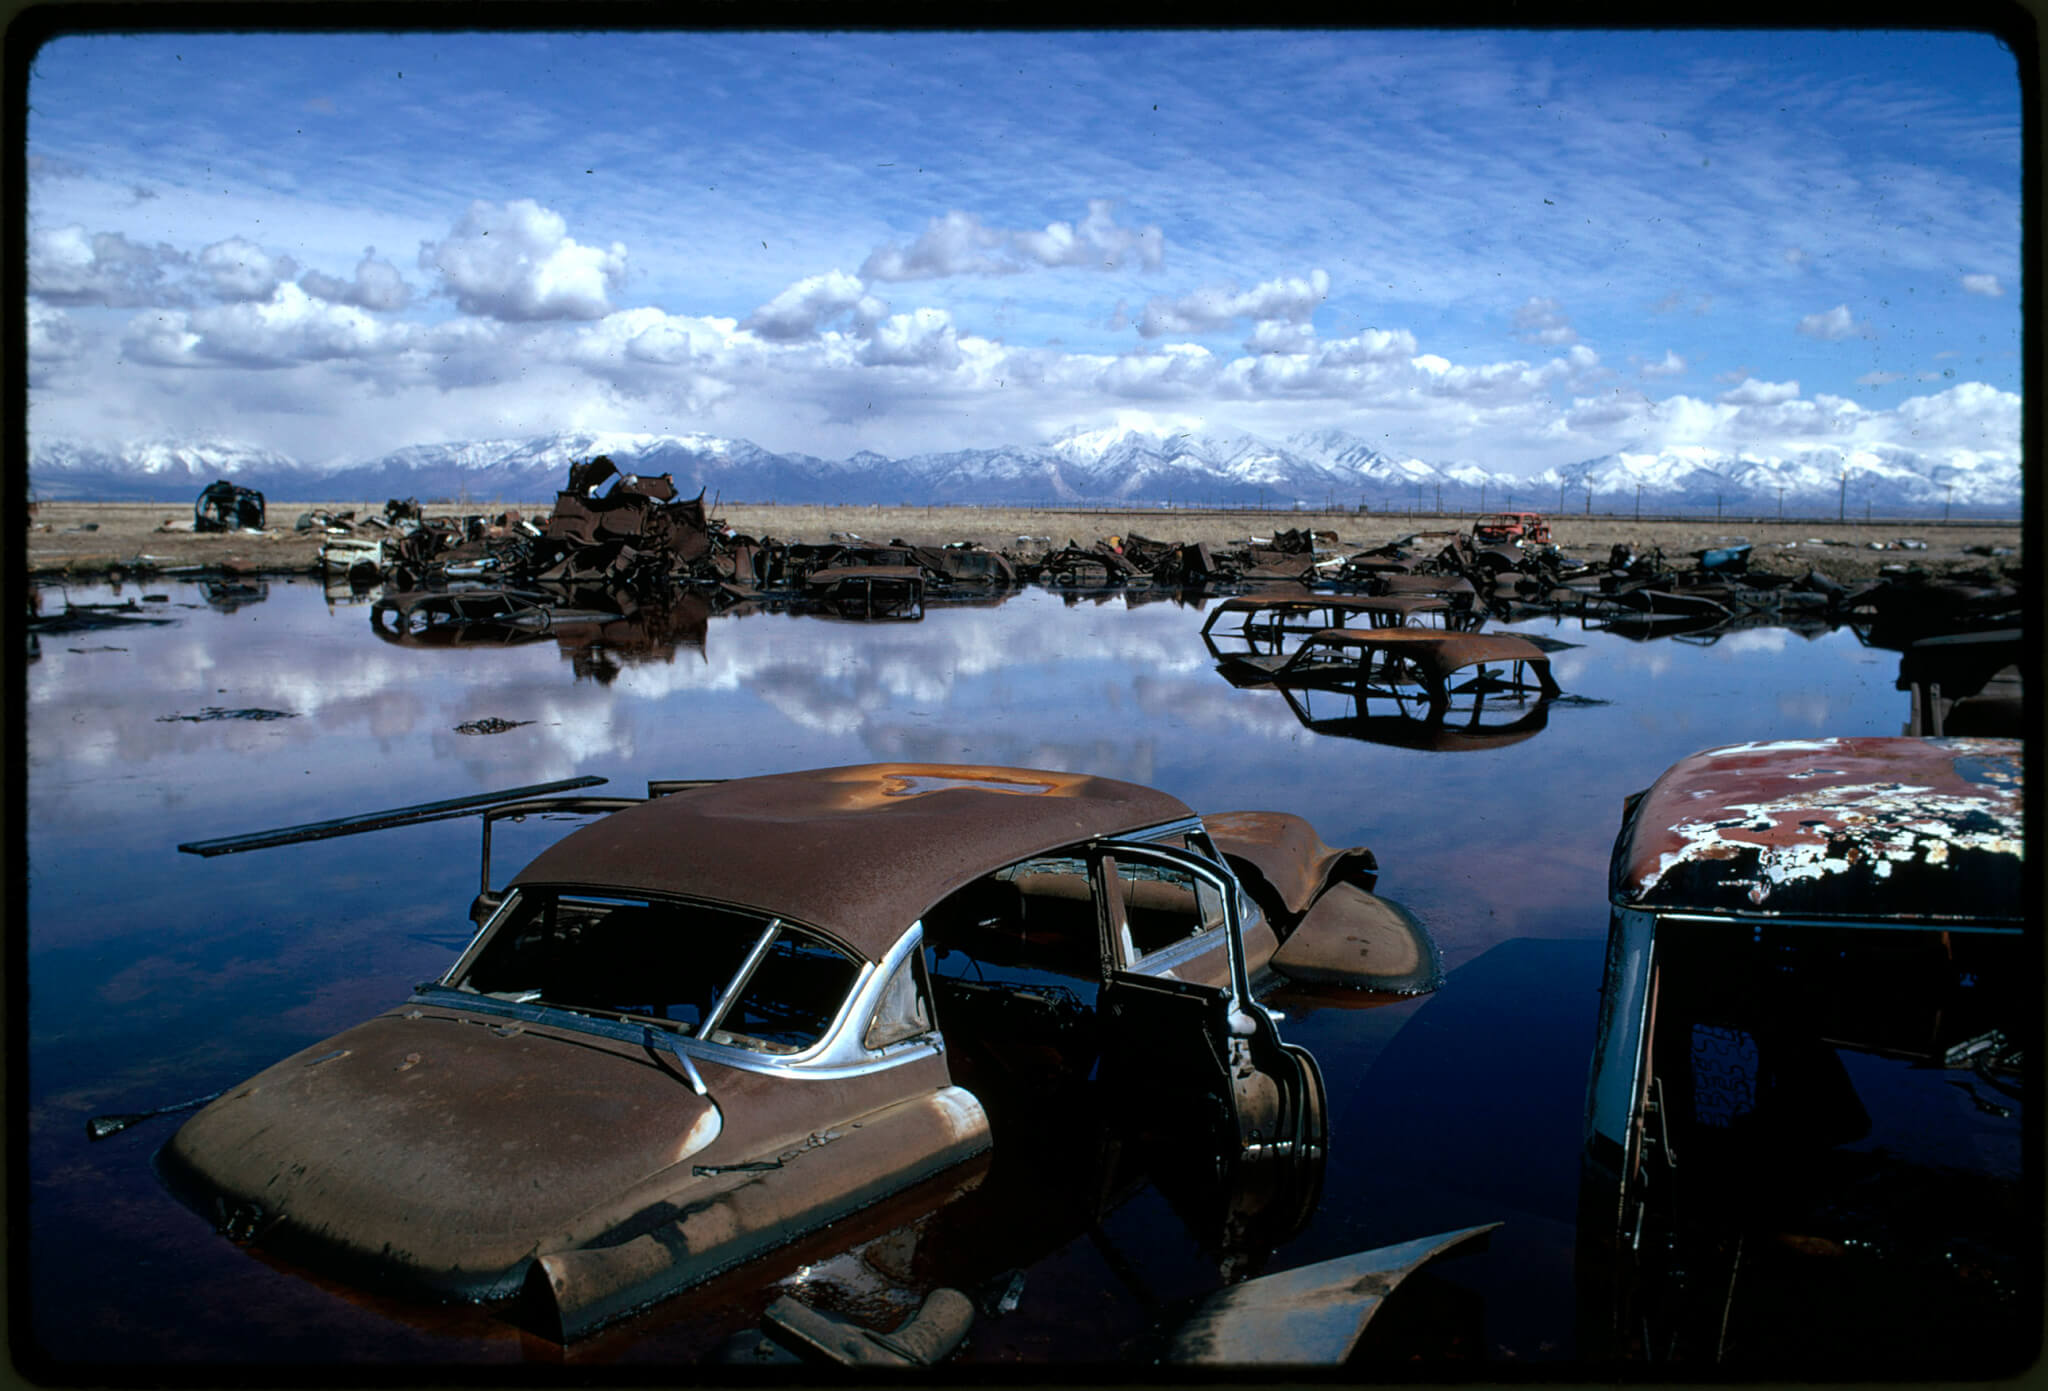 Abandoned automobiles in a lake